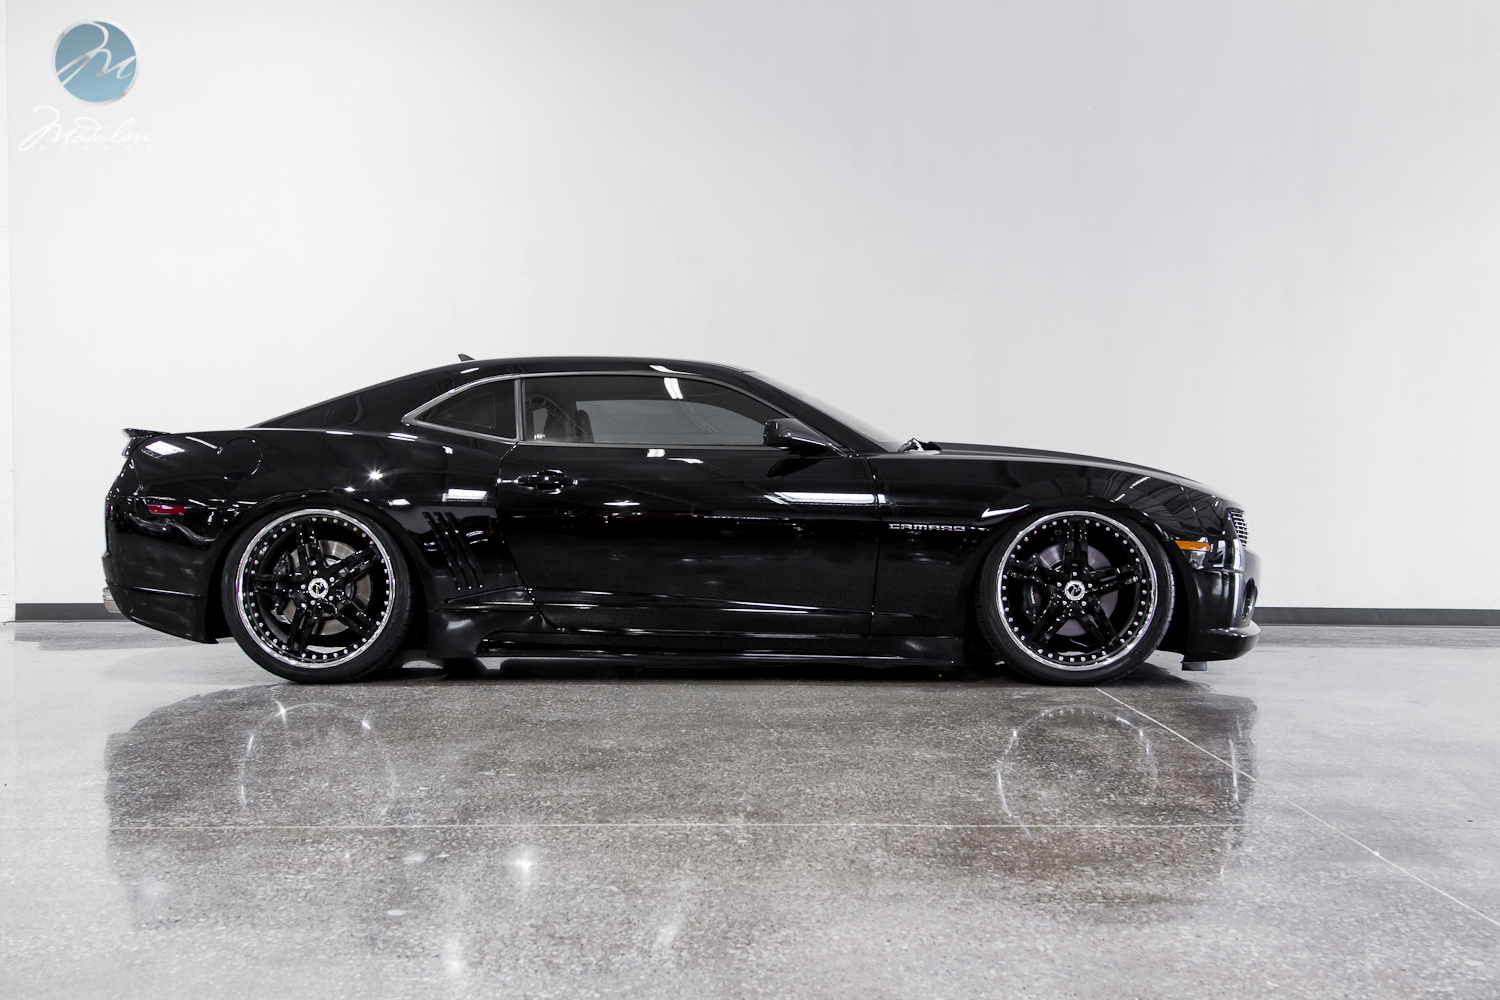 modulare wheels photoshoot camaro ss with air ride 22 modulare m22 gloss black. Black Bedroom Furniture Sets. Home Design Ideas